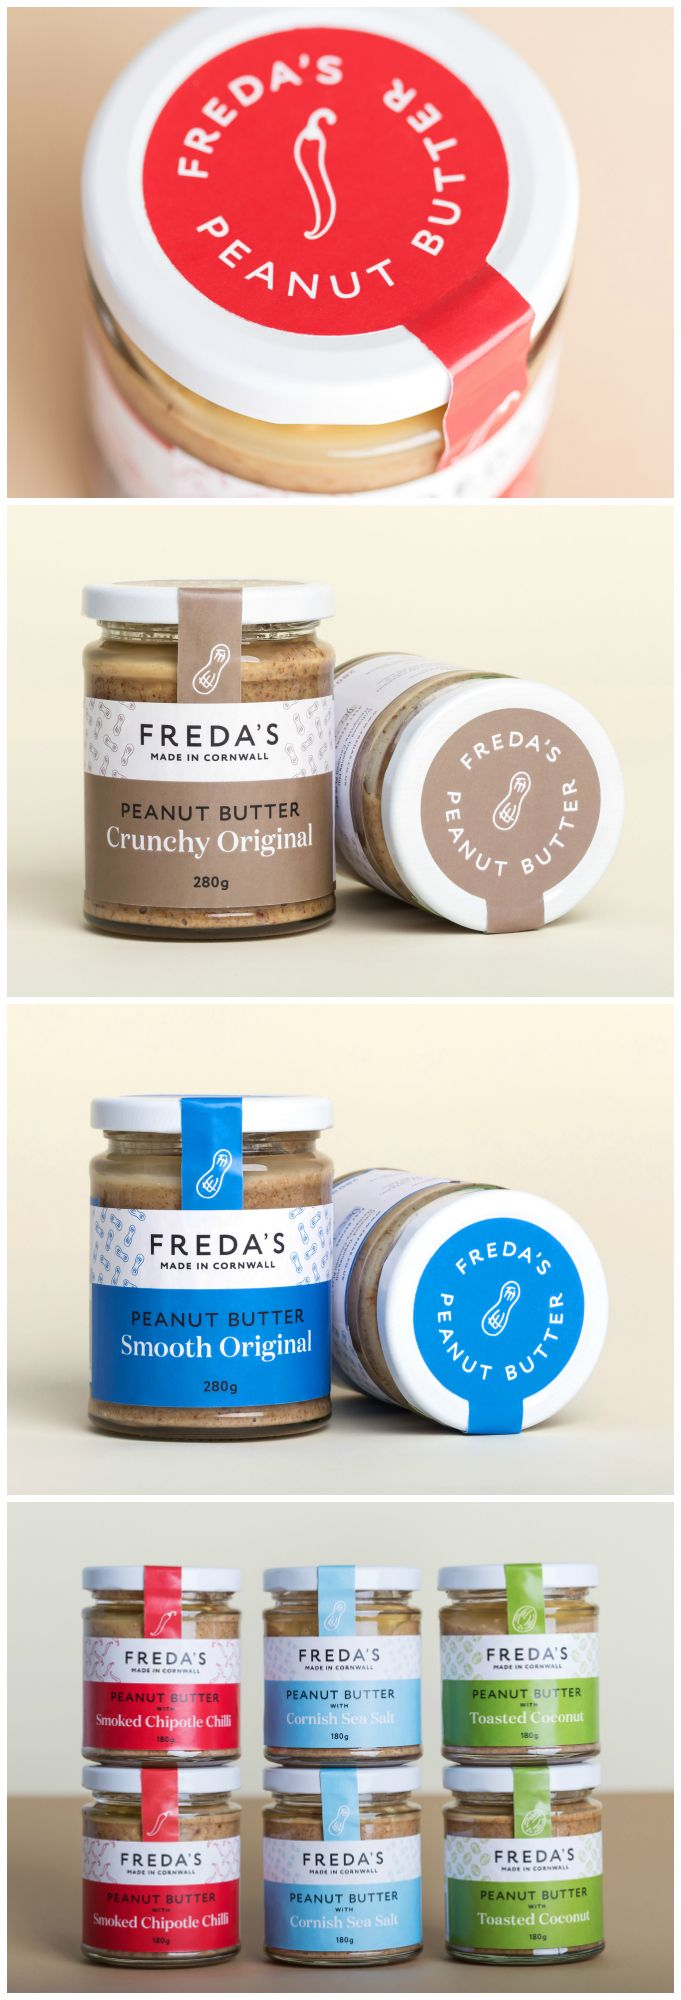 "Friends - Freda's Peanut Butter #packaging #design ""Freda's approached Friends to brand and package their delicious new artisan product."" World Packaging Design Society"